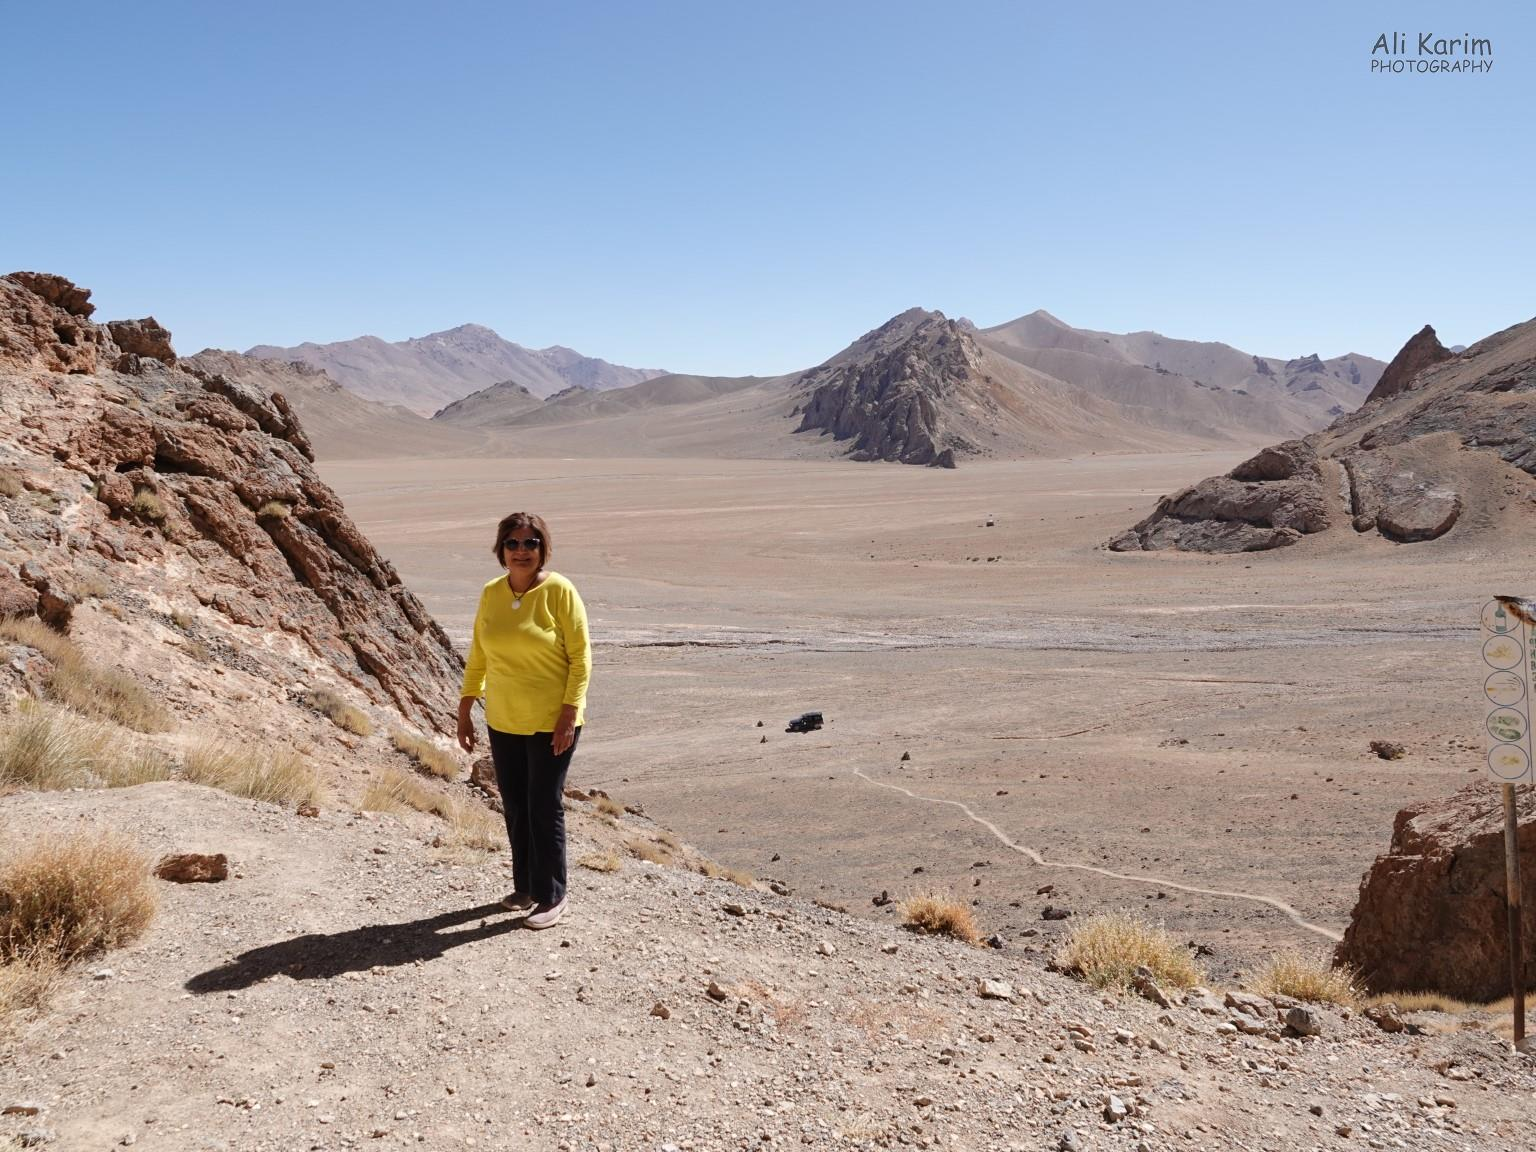 More Murghab & Alichur, Tajikistan, View of the Kurteskei valley from the Shakhty cave entrance. The vastness, scale, & desolation of this dramatic high mountain desert valley was awe-inspiring. Note our car at the bottom of the hill for size perspective